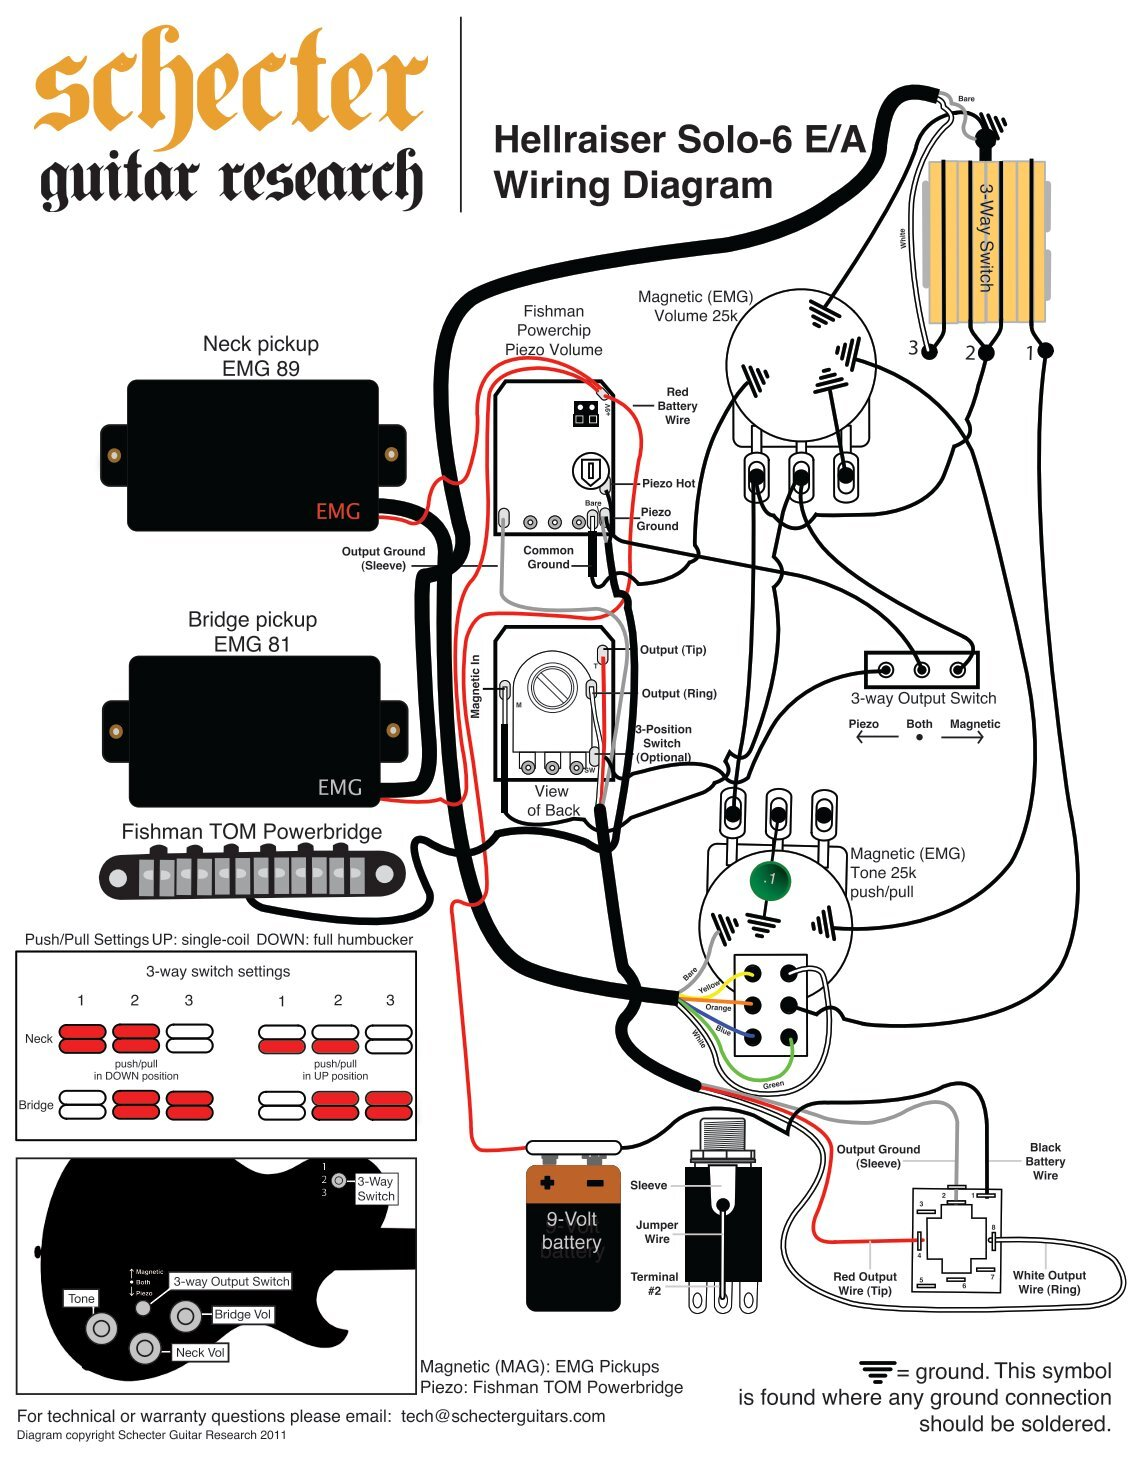 fender elite wiring diagram fender 5 string bass wiring EMG Guitar Wiring Diagrams hellraiser solo 6 wiring diagram schecter guitars